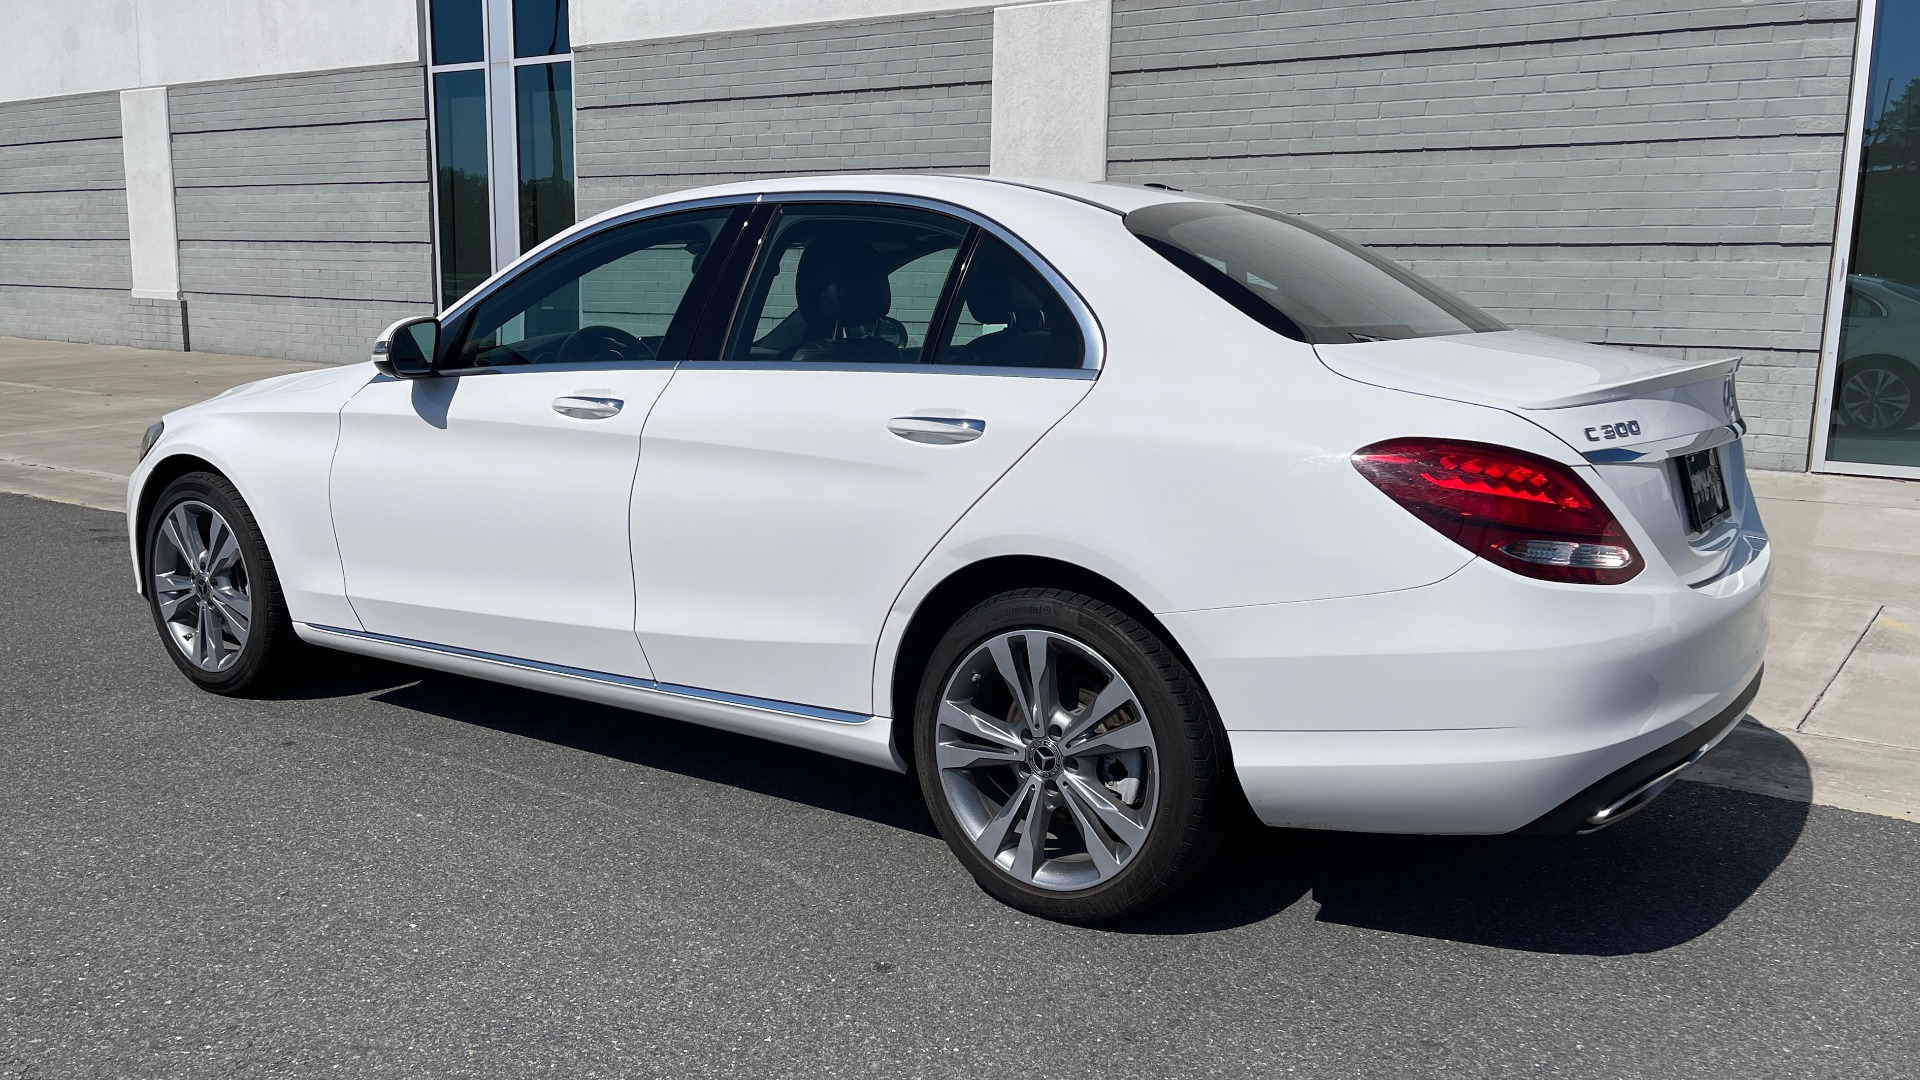 Used 2018 Mercedes-Benz C-CLASS C 300 PREMIUM / APPLE CARPLAY / KEYLESS-GO / SUNROOF / REARVIEW for sale $32,995 at Formula Imports in Charlotte NC 28227 5